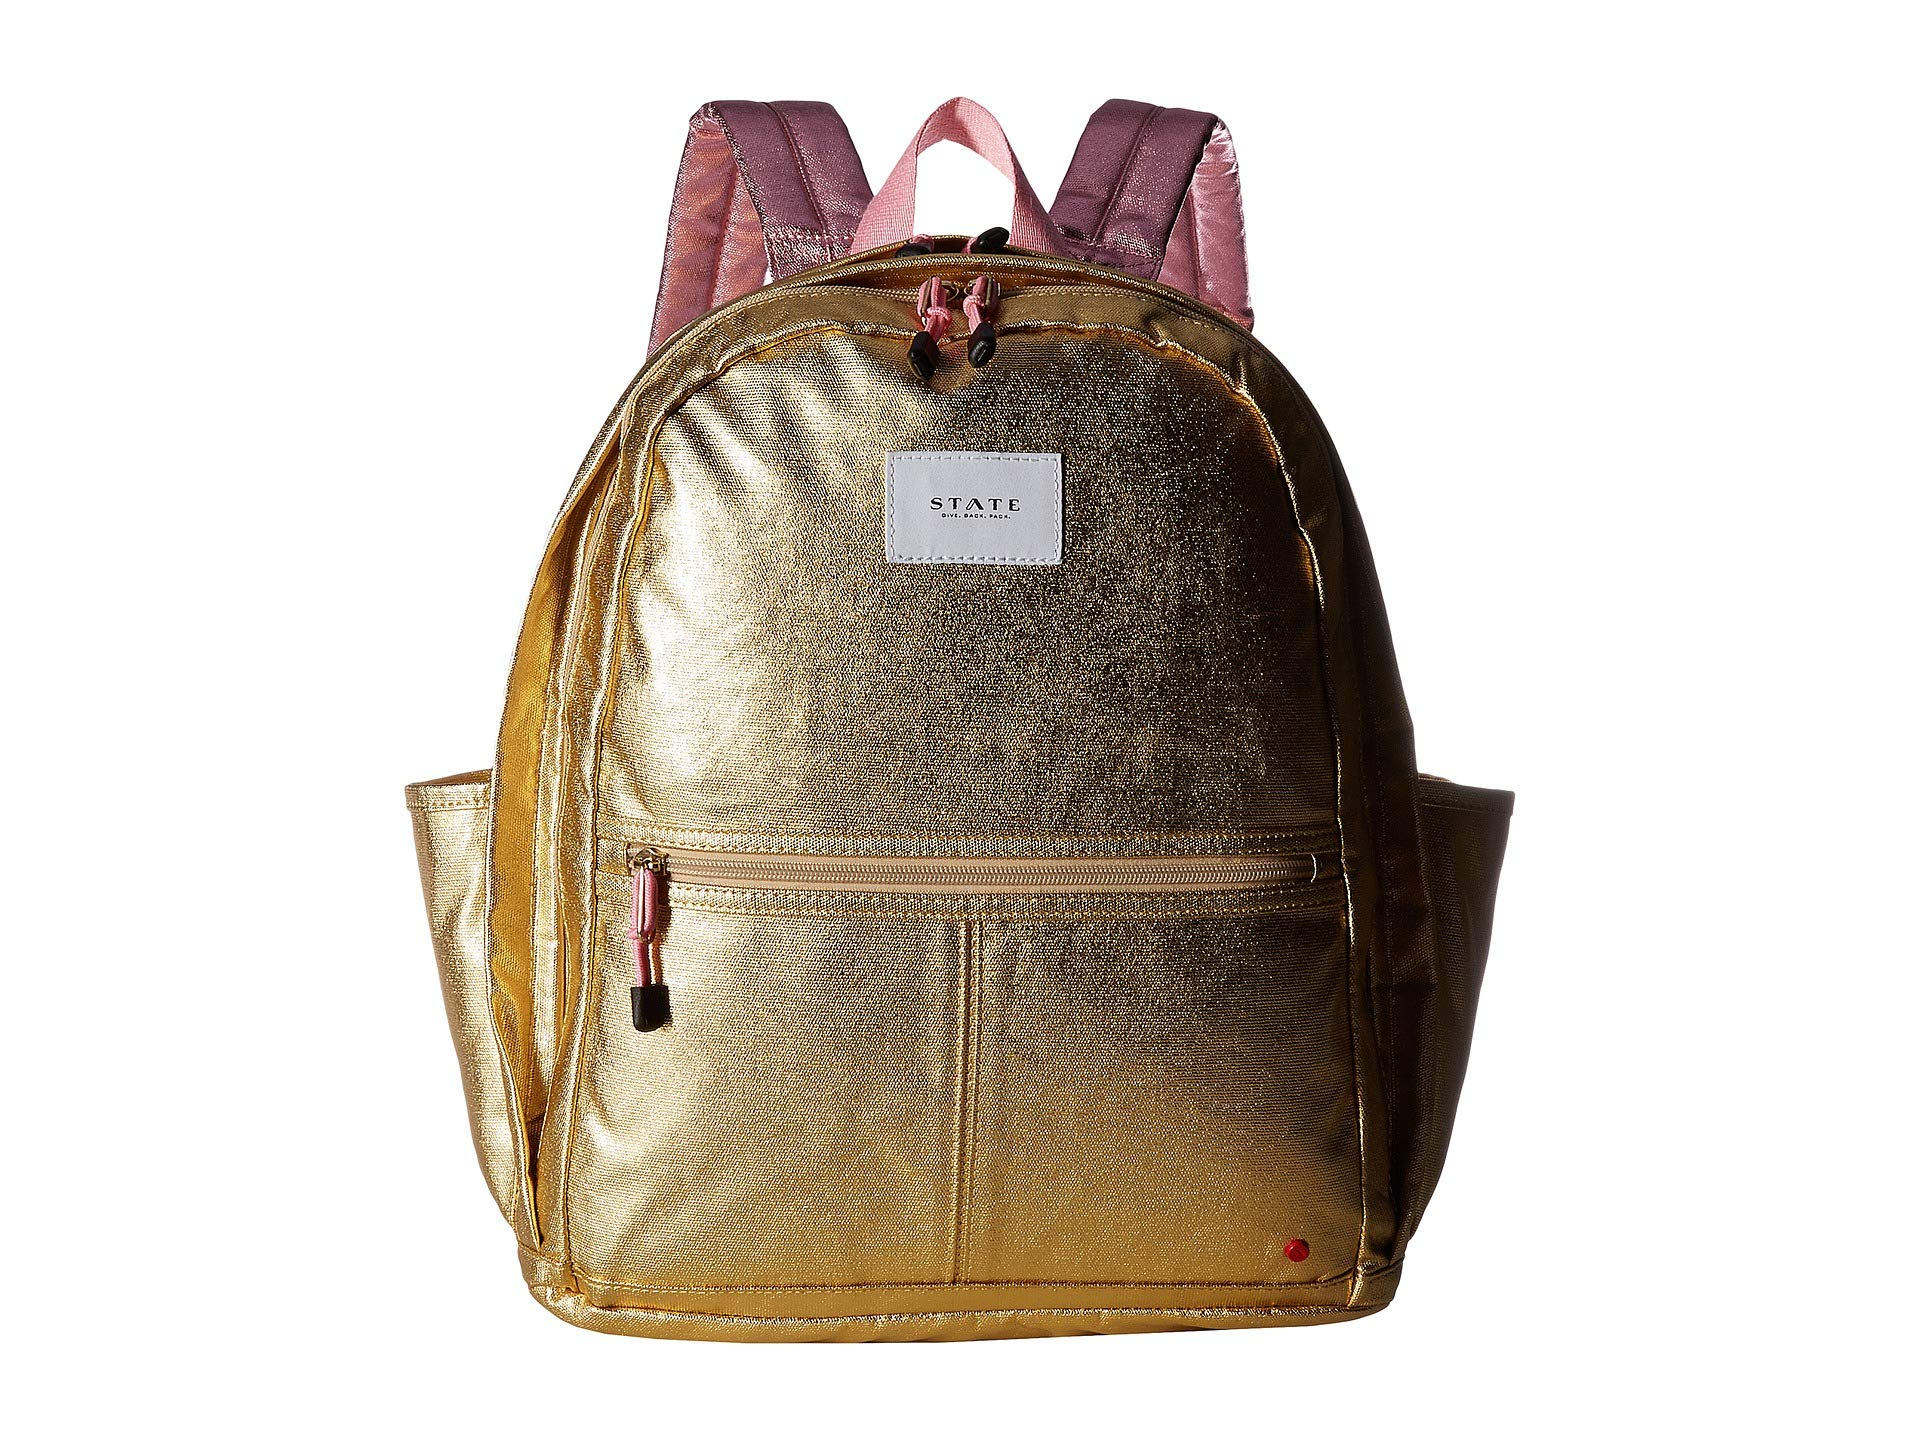 STATE Women's Kent Backpack, Gold/Pink, One Size by STATE Bags